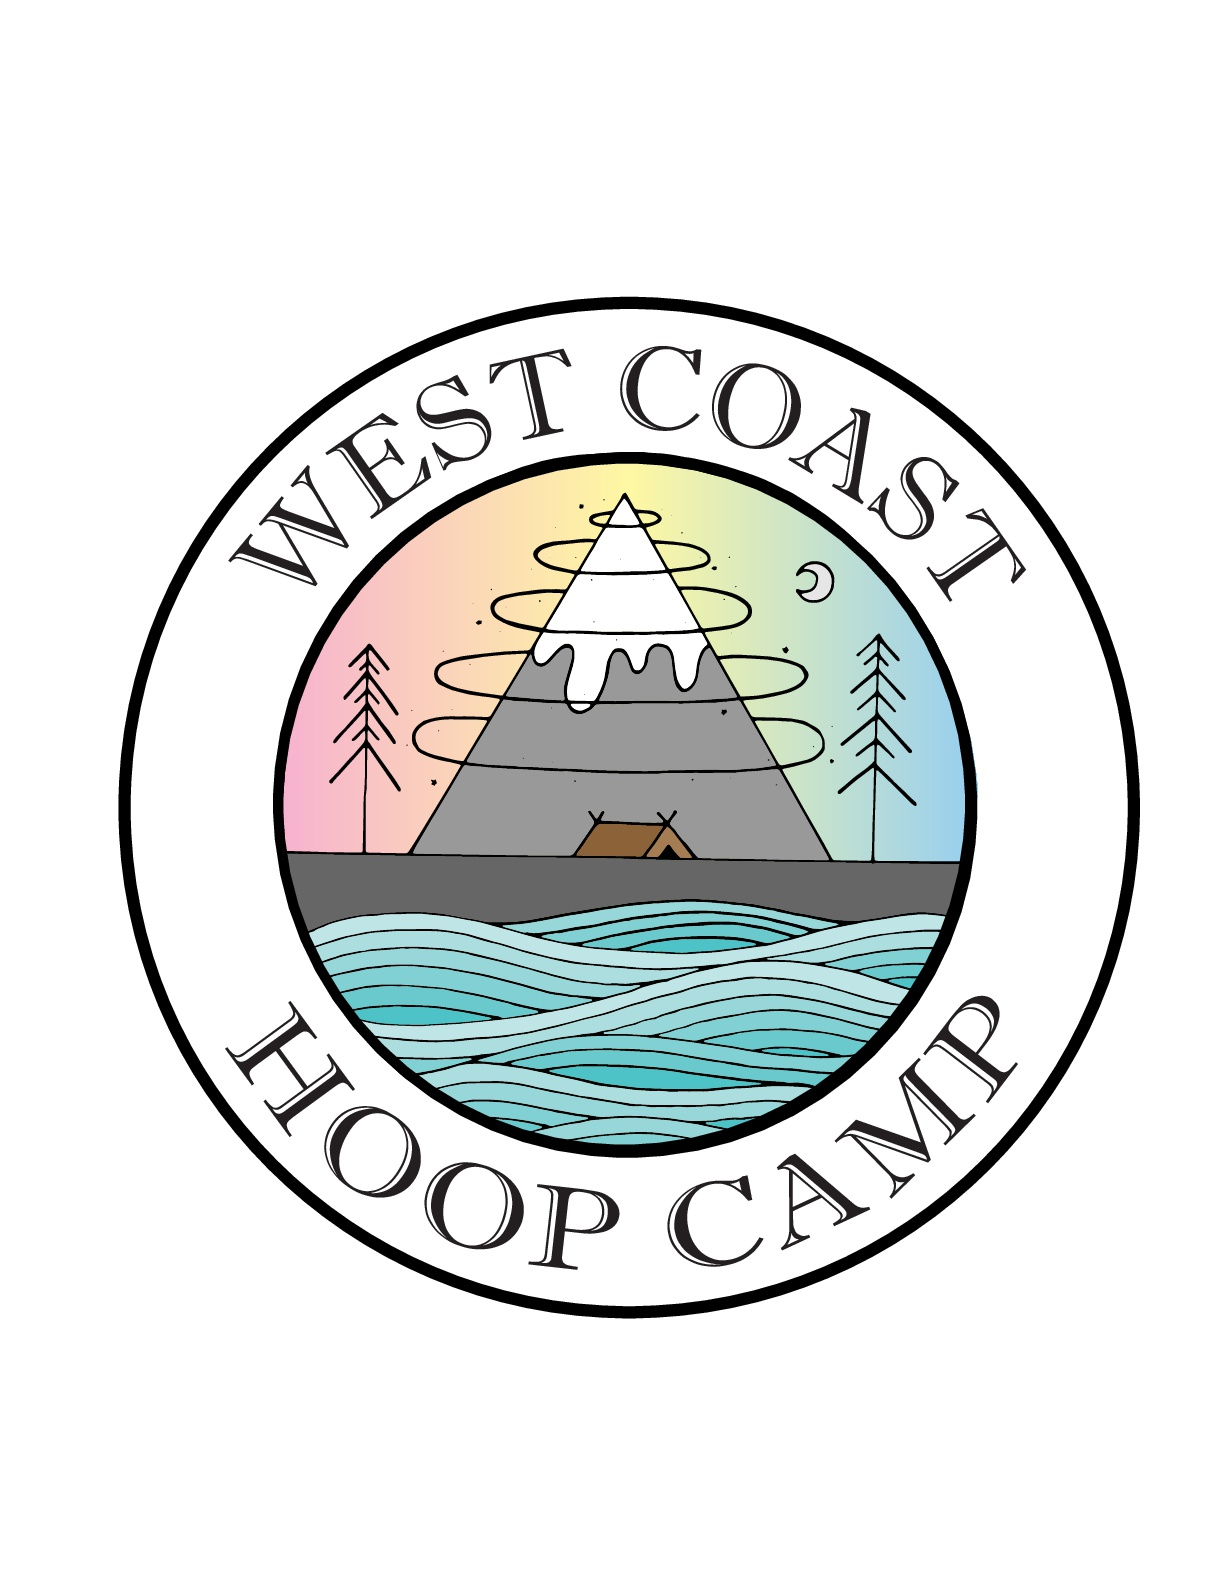 West Coast Hoop Camp Logo